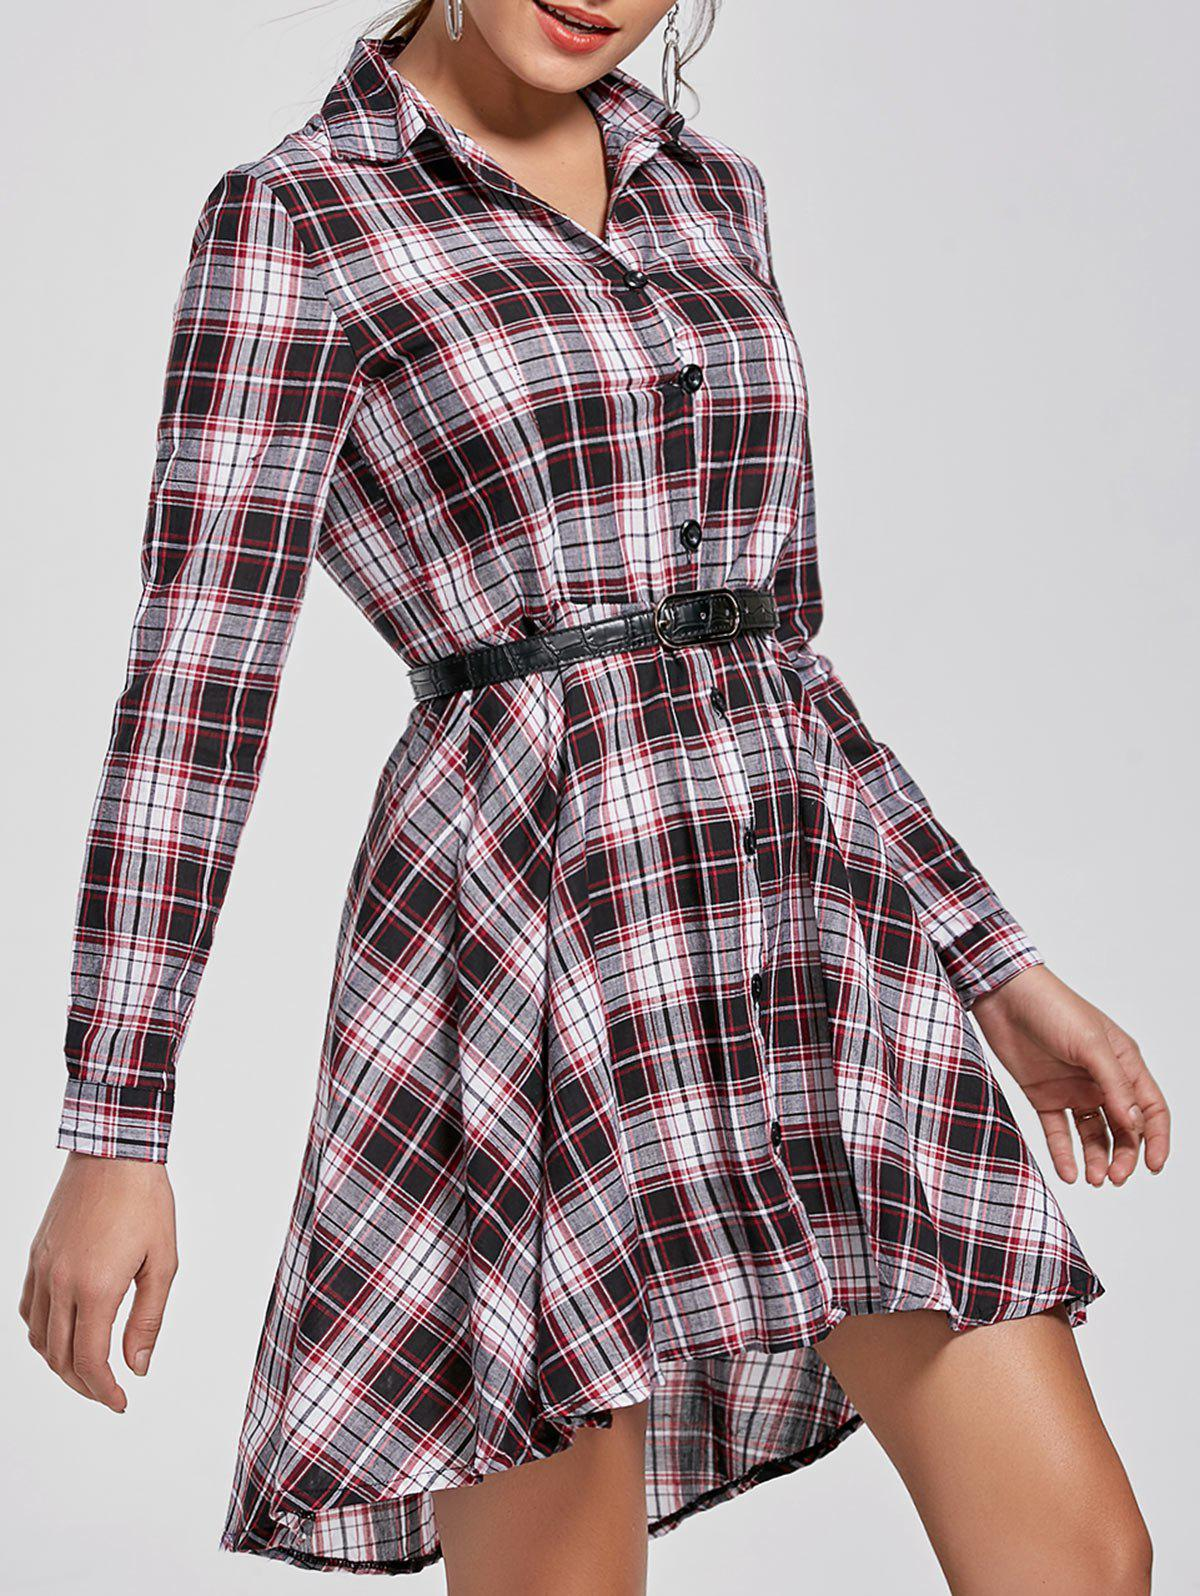 Button Down Plaid Long Sleeve Shirt DressWOMEN<br><br>Size: XL; Color: COLORMIX; Style: Casual; Material: Cotton,Polyester; Silhouette: High-Low; Dress Type: Shirt Dress; Dresses Length: Mini; Neckline: Shirt Collar; Sleeve Length: Long Sleeves; Pattern Type: Plaid; With Belt: No; Season: Fall,Spring; Weight: 0.1840kg; Package Contents: 1 x Dress;